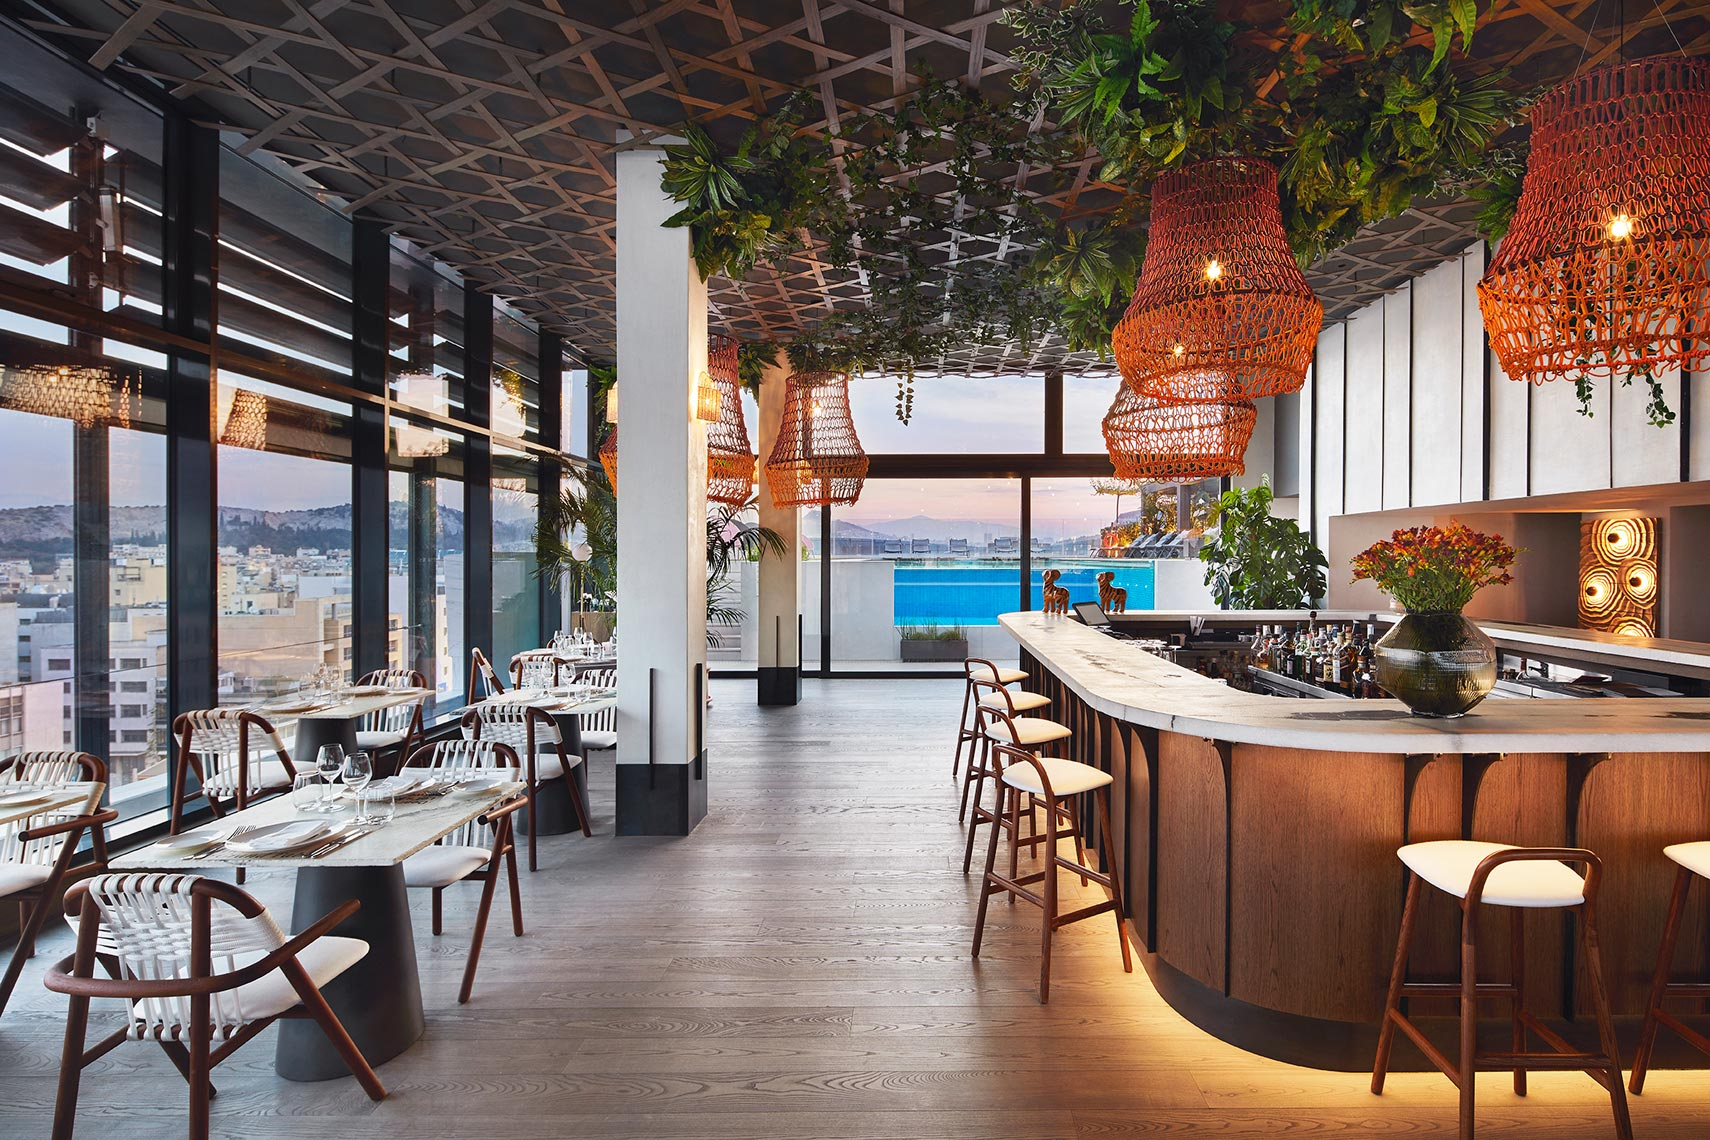 2019_04_02_HYATT_ATHENS_Restaurant_Bar_S02_100_EXTERIOR-copy1